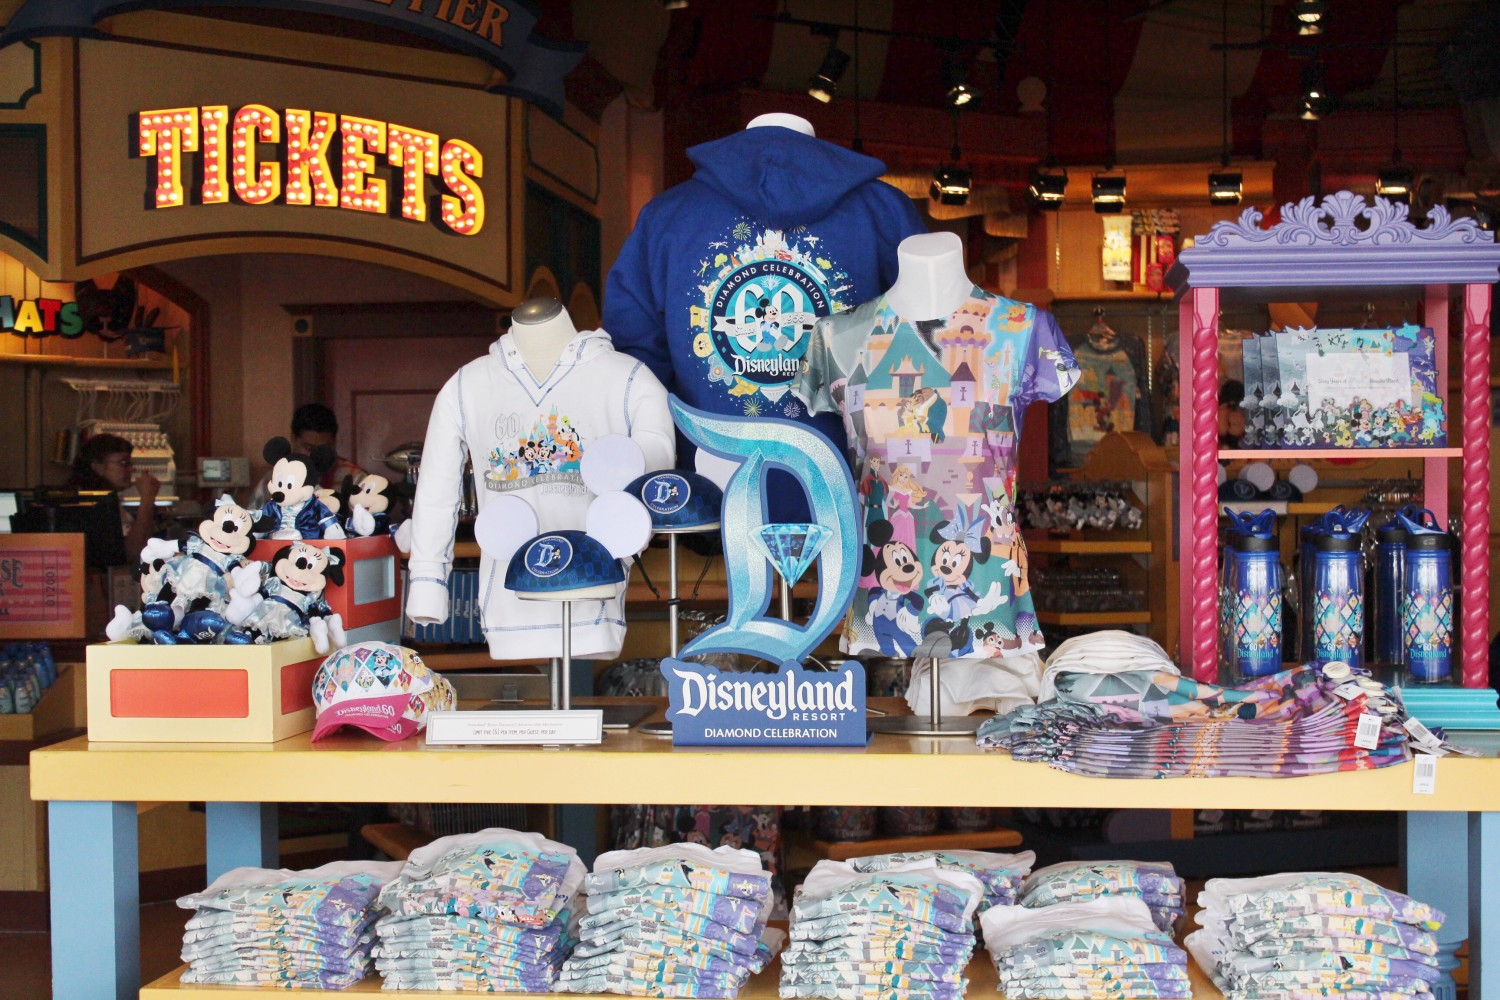 Disneyland 60th Anniversary Diamond Celebration Merchandise